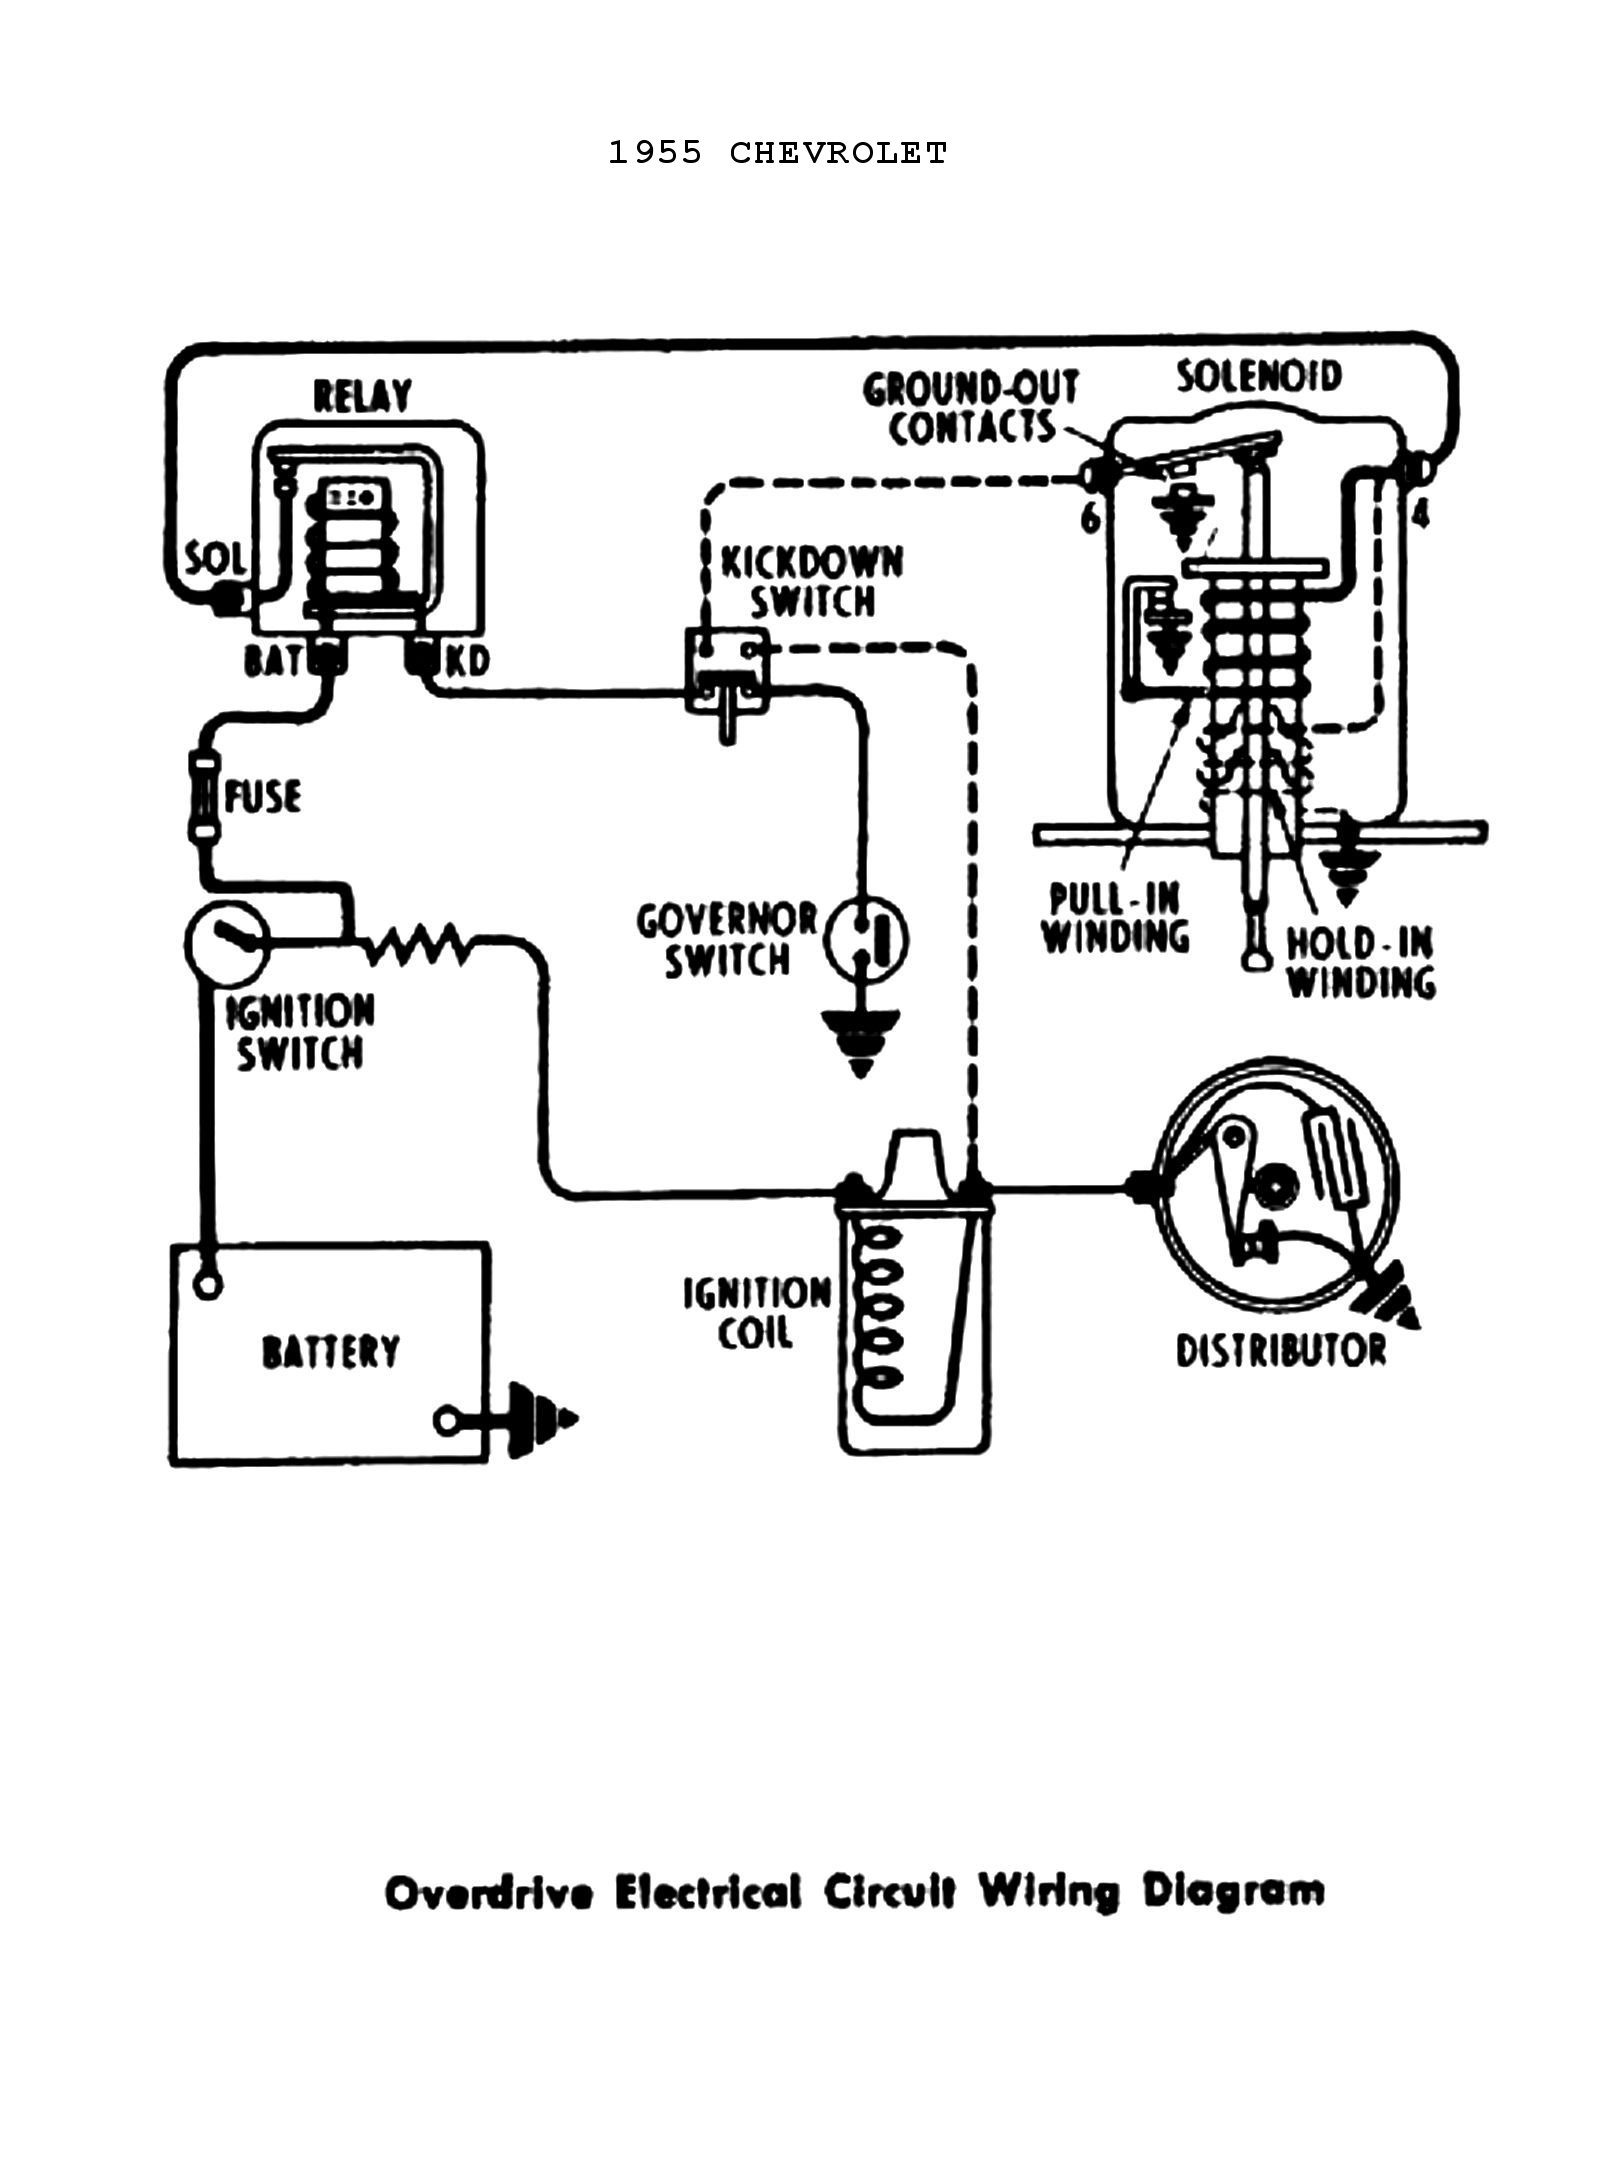 1990 Bronco Engine Diagram also 1969 Ford Ltd Wiring Diagram likewise 88 Crown Victoria 5 0l Engine Diagram moreover 351 Ford Pleasure Craft Engine Diagram also 2d9nd 1990 Ford F150 Tuned New Plugs Wires Distributor Cap. on 1990 ford 302 firing order